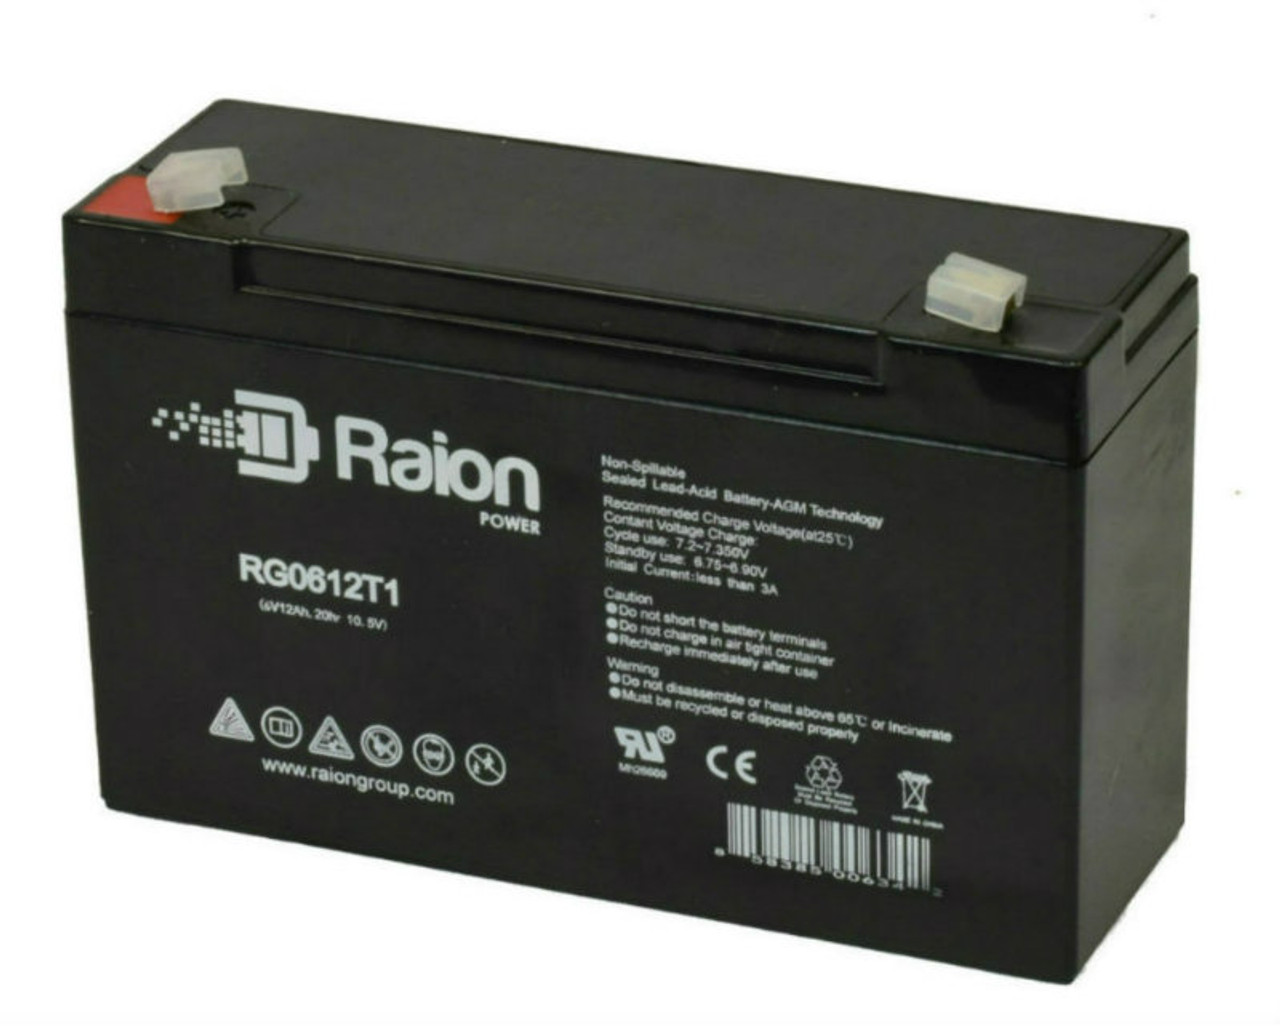 Raion Power RG06120T1 Replacement Battery Pack for Sure-Lites 4C2 emergency light